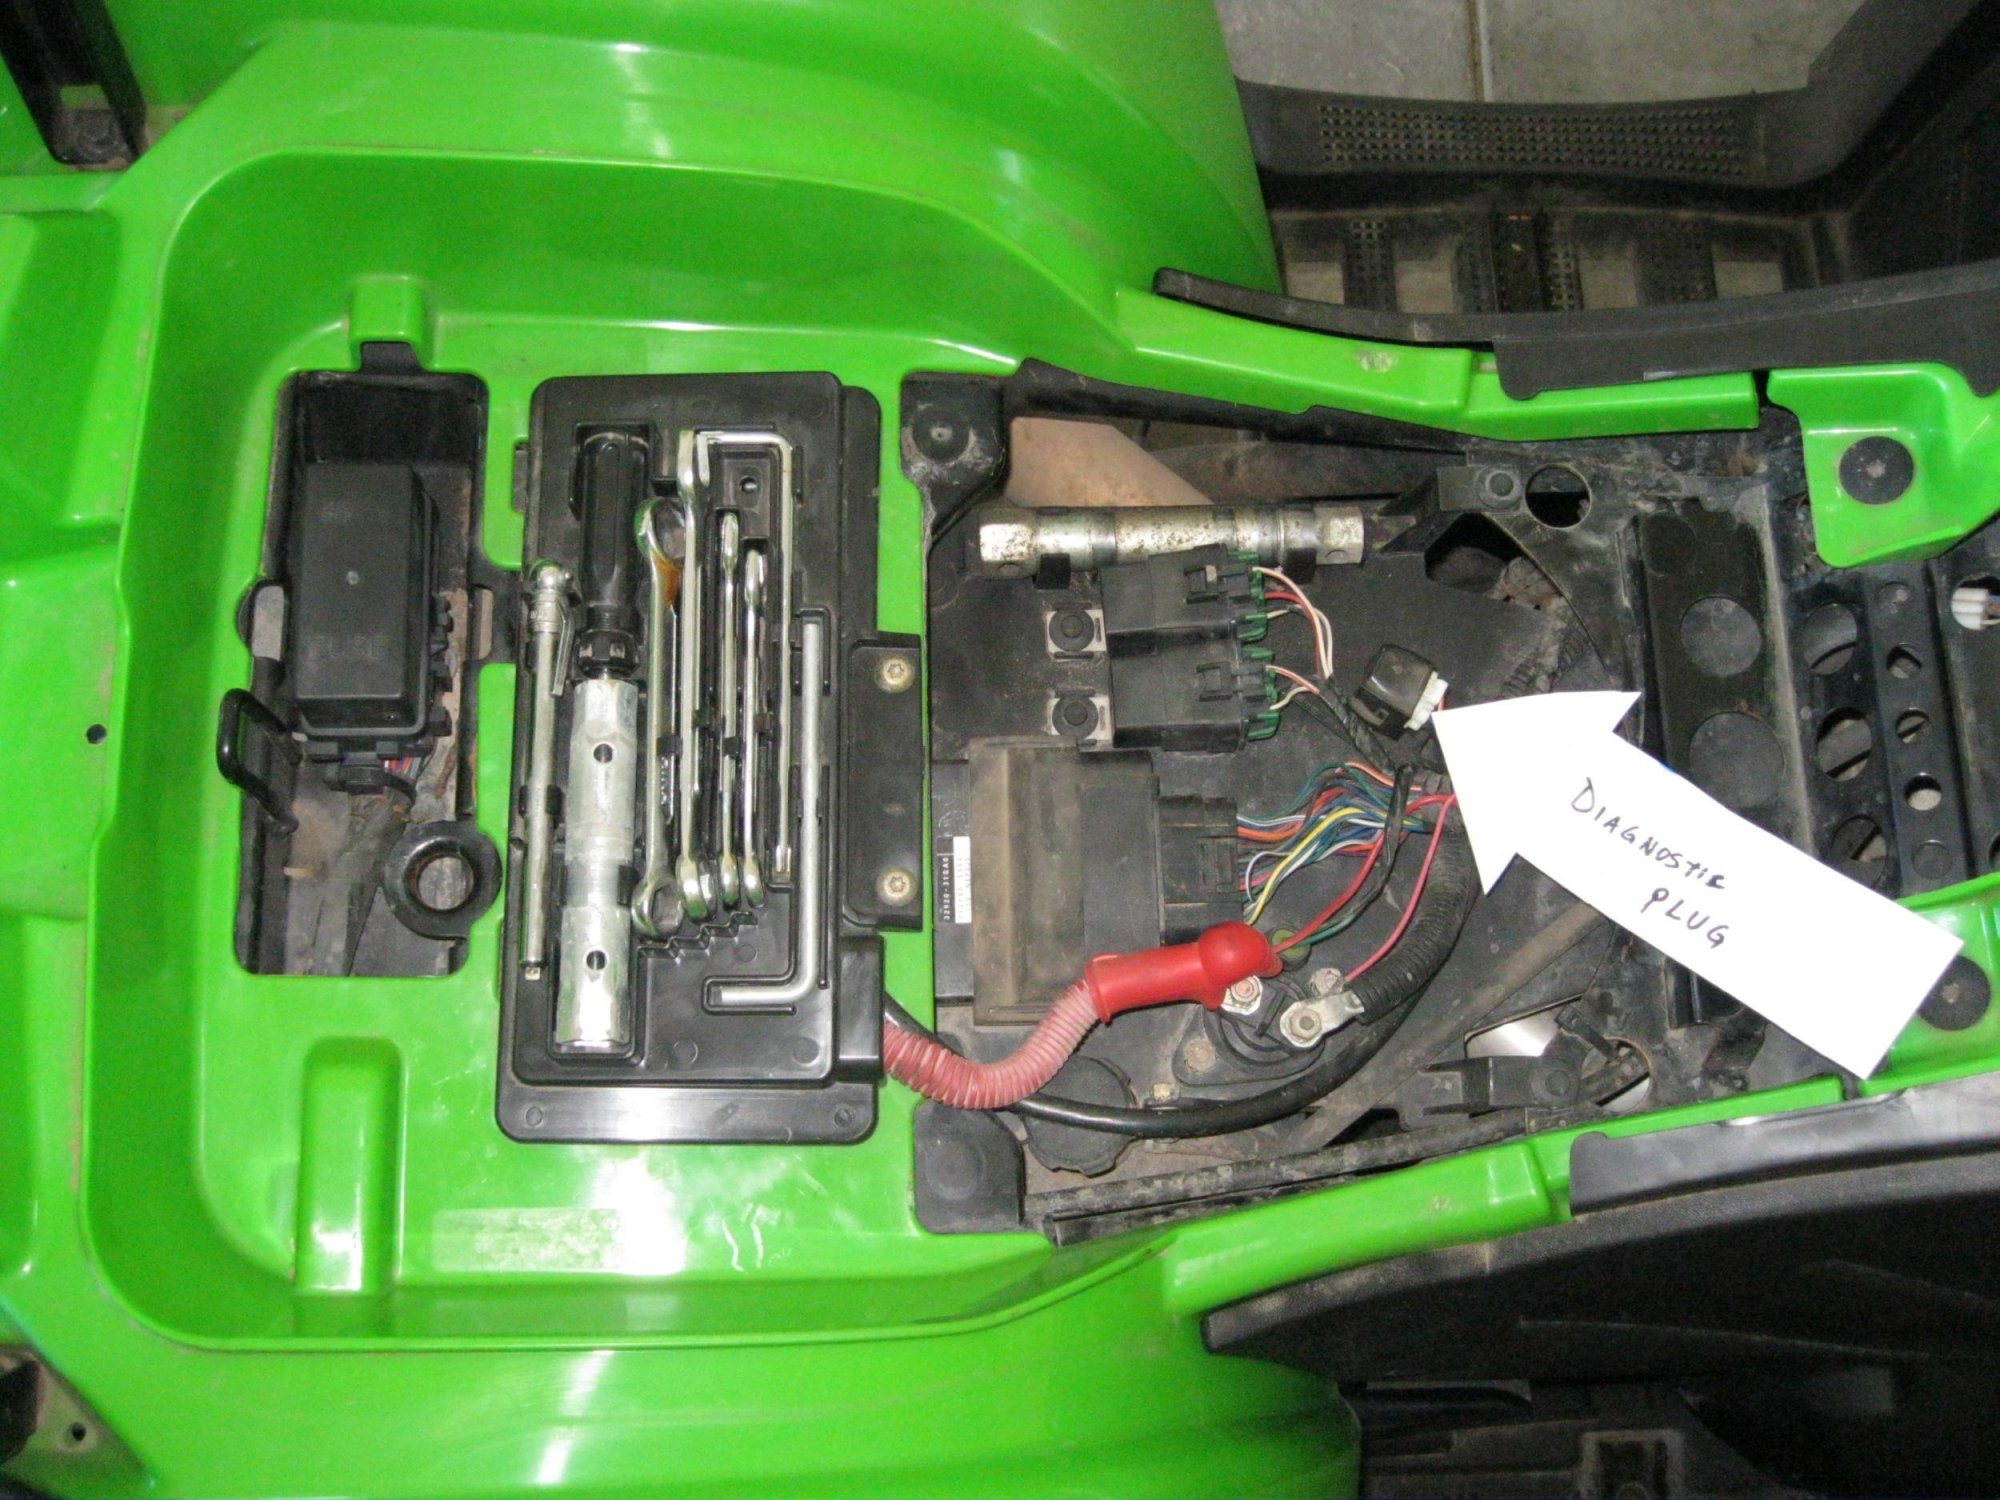 hight resolution of kawasaki kfx 700 fuse box location wiring diagram note kfx 700 wiring diagram